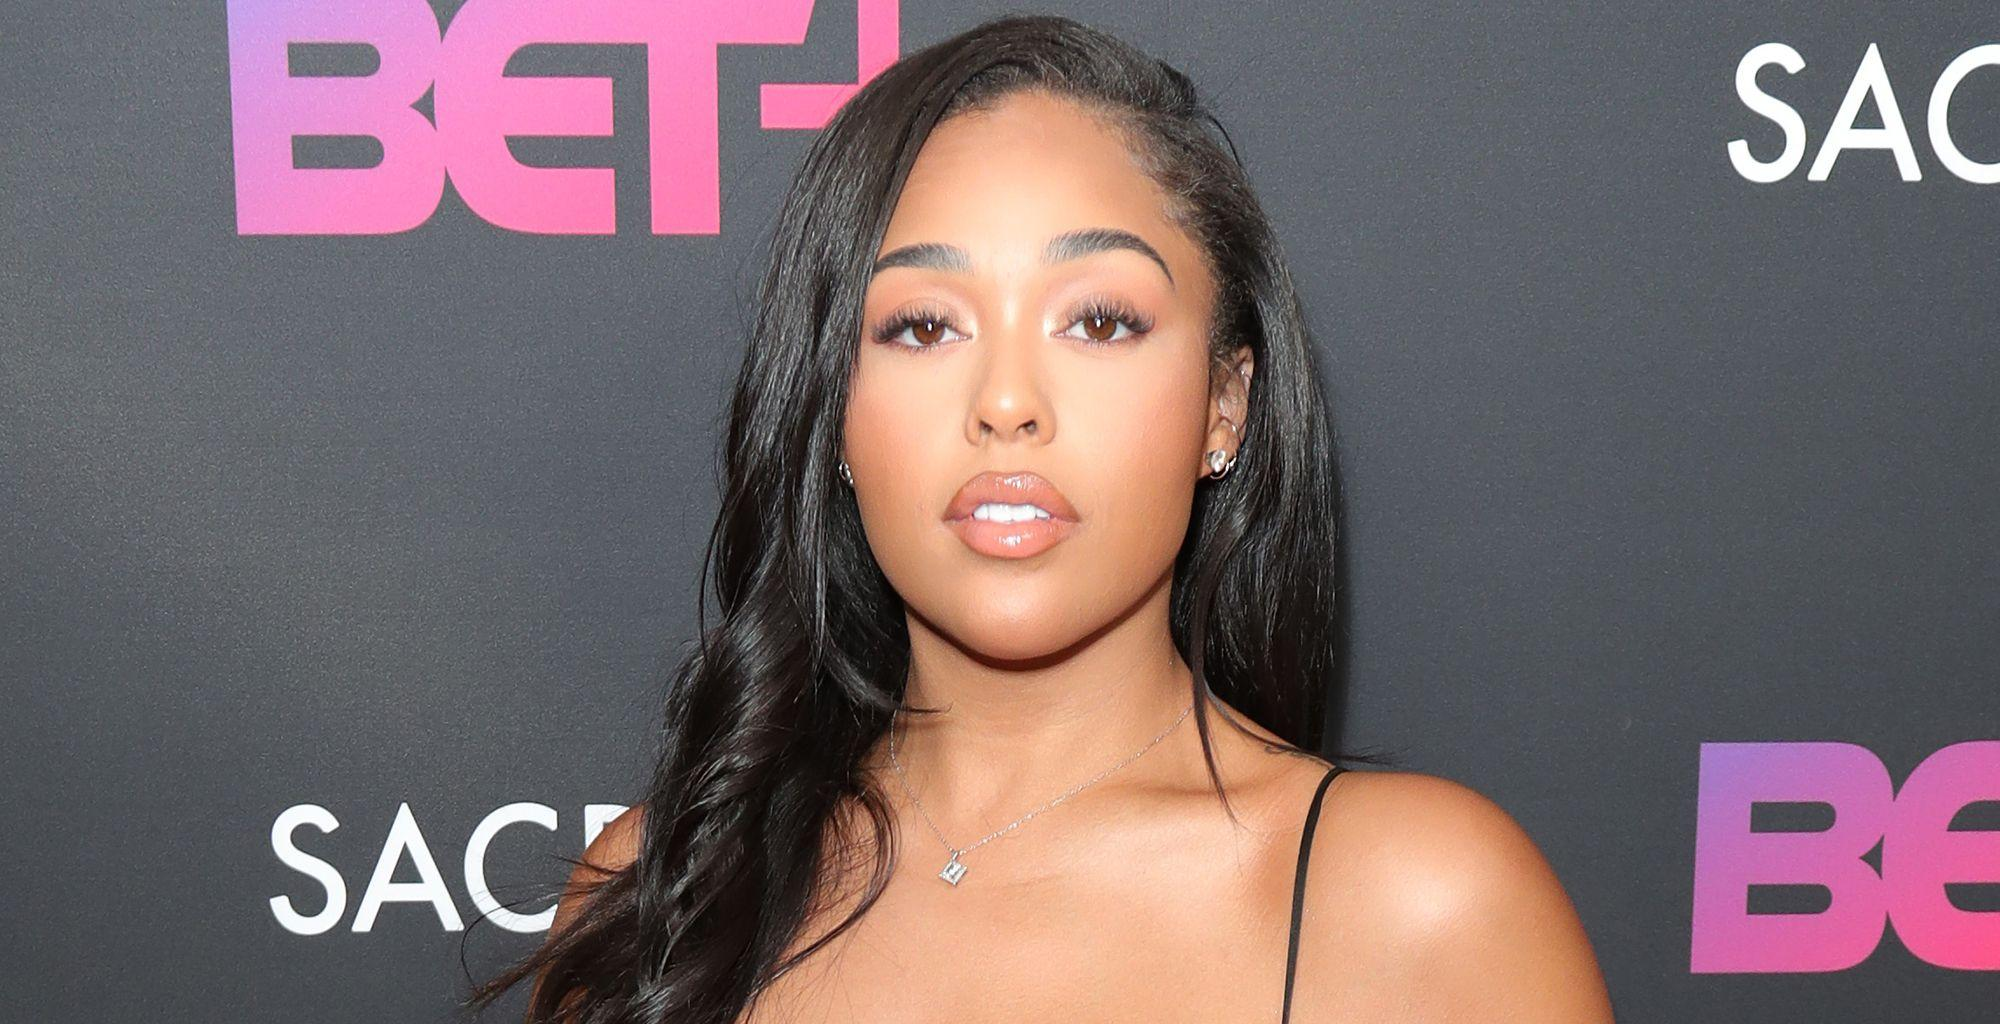 Jordyn Woods Impresses Fans With Her Natural Beauty